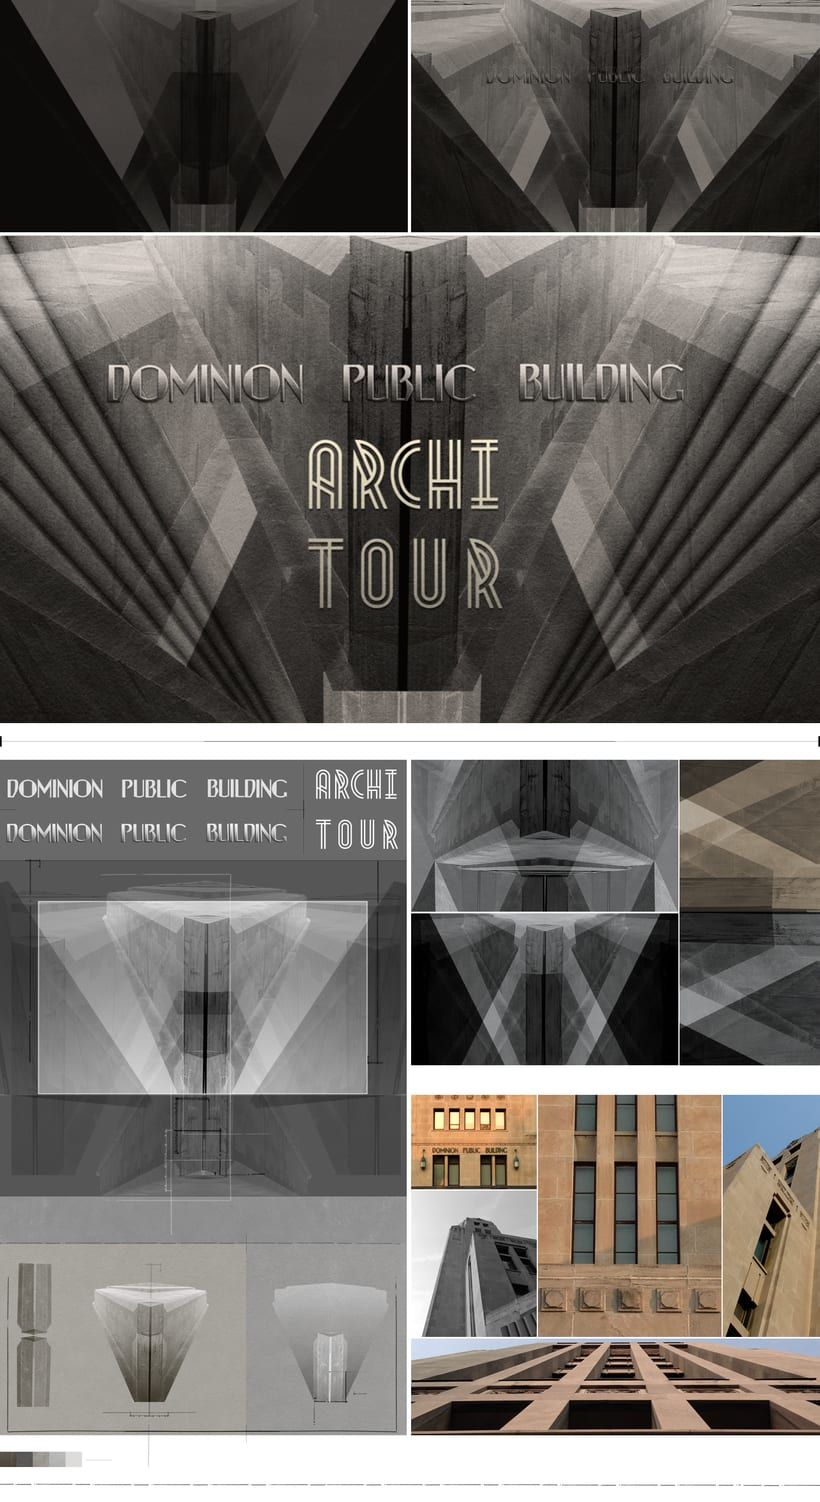 ARCHITOUR / DOMINION PUBLIC BUILDING  0